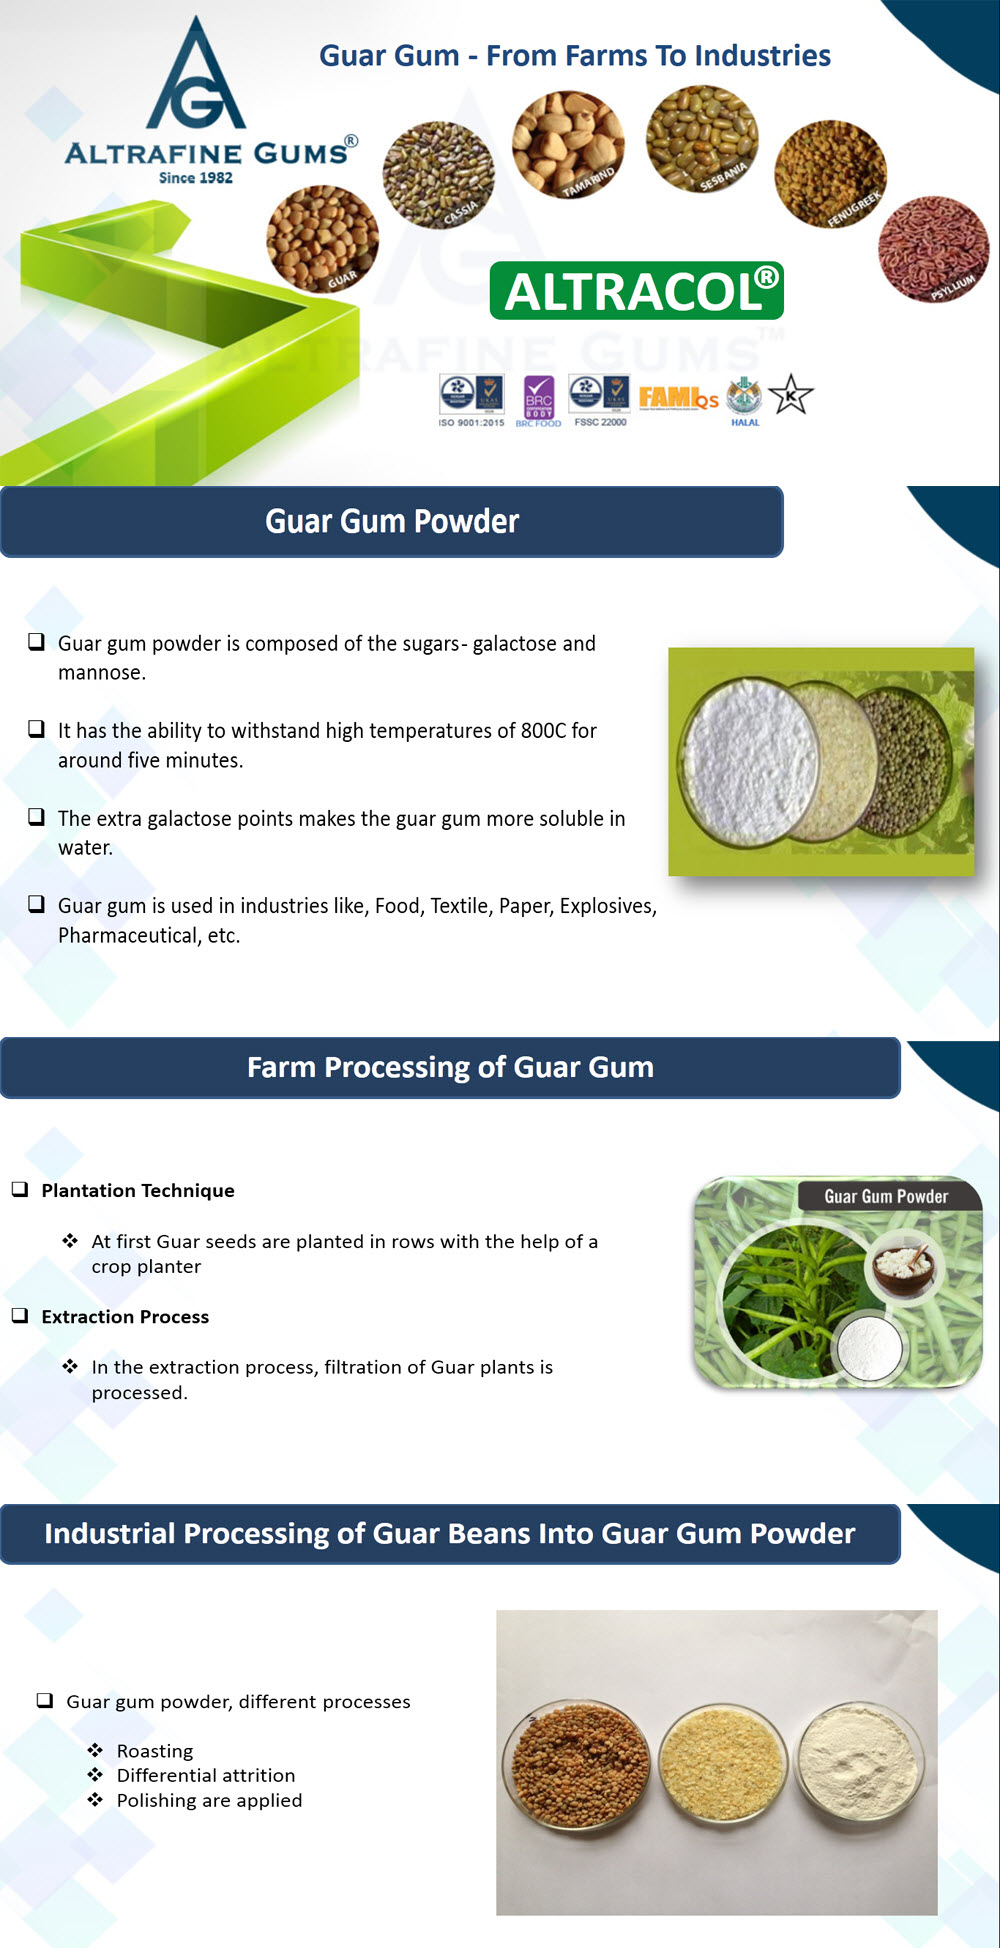 Guar Gum - From Farms To Industries